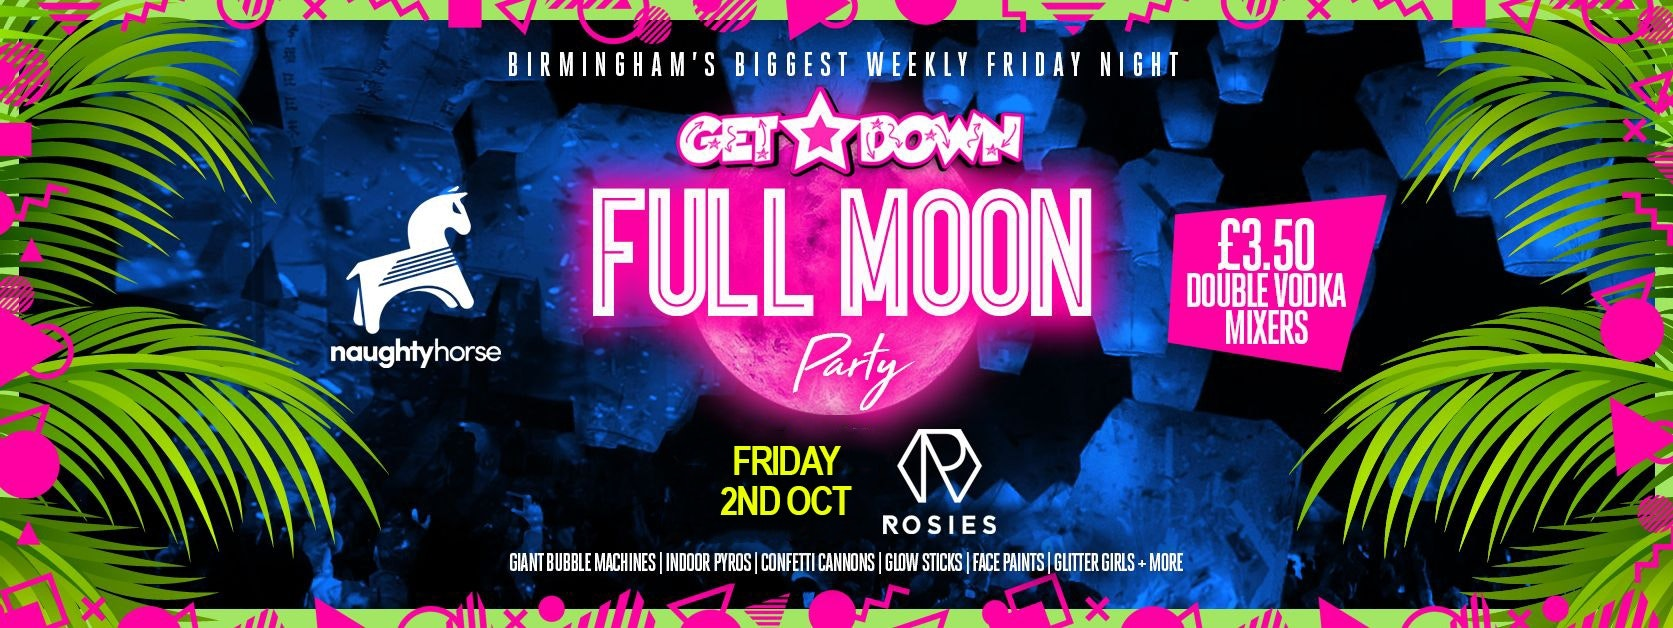 Get Down Fridays FULL MOON PARTY – Rosies!